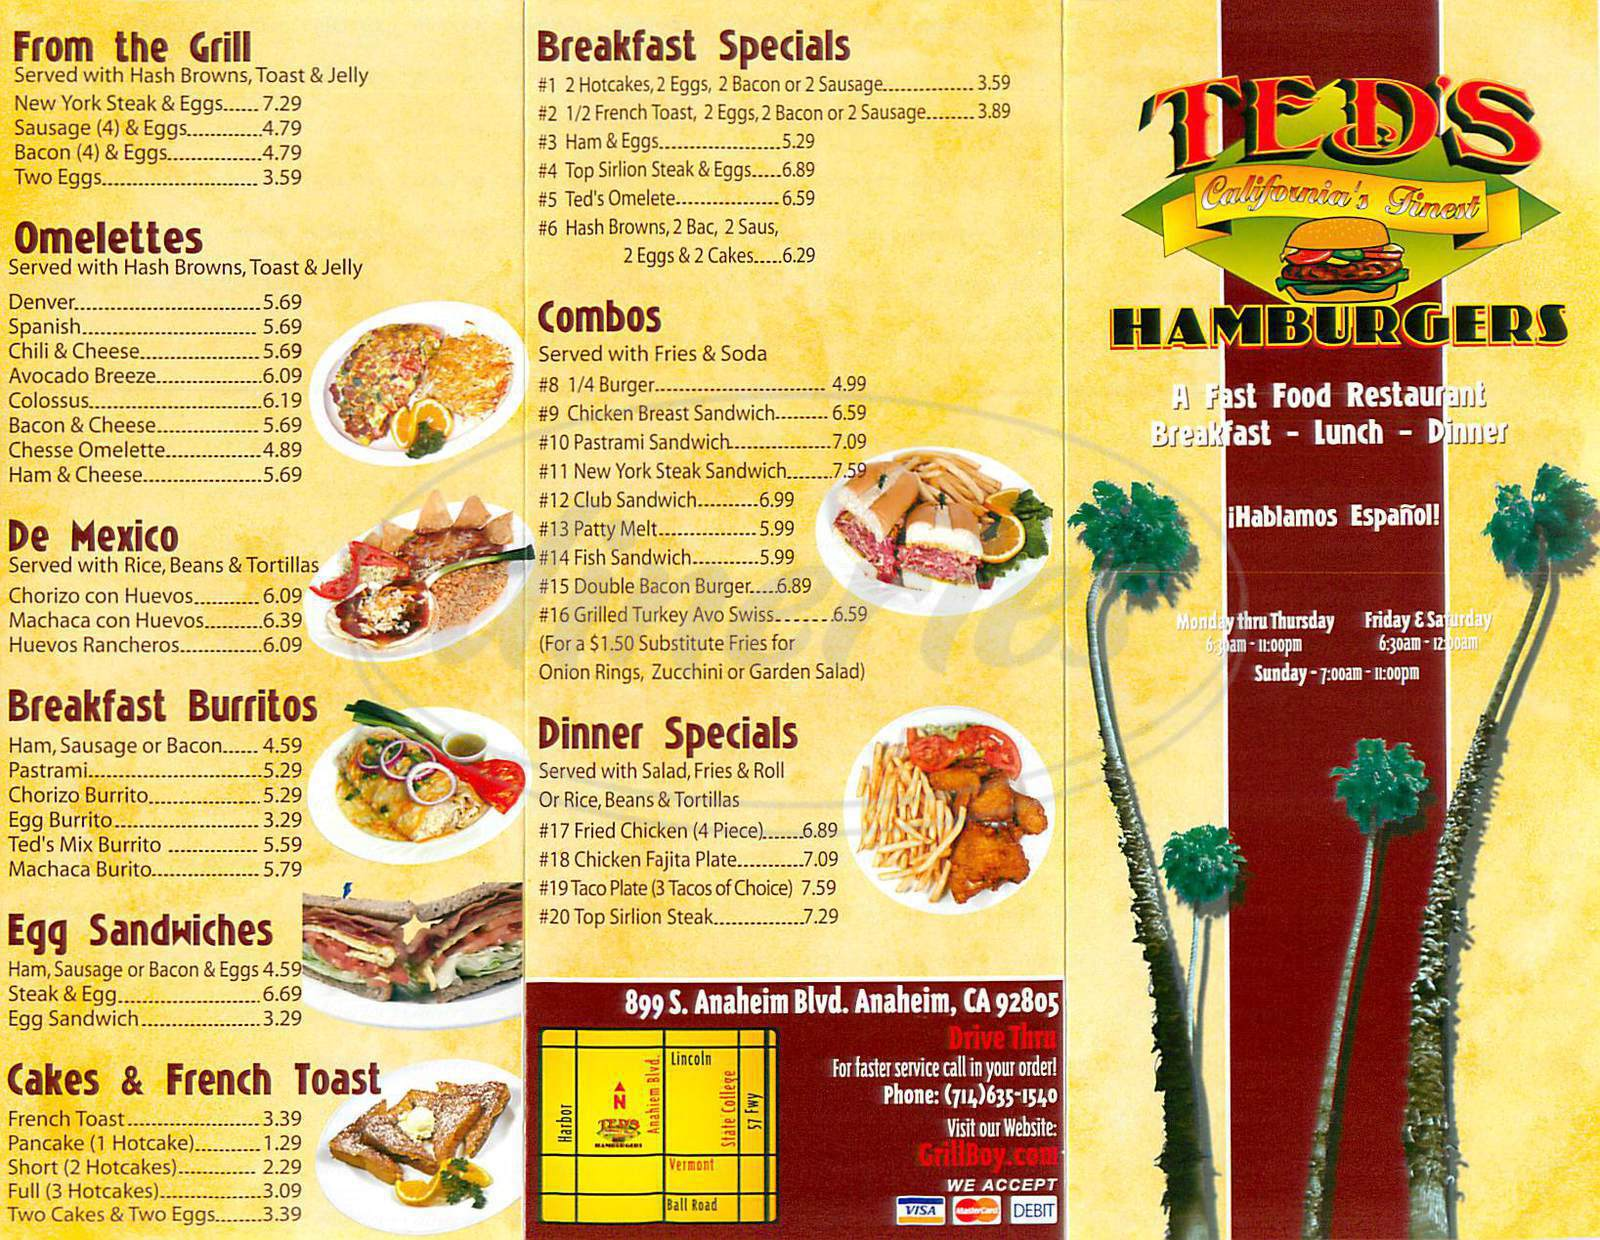 menu for Teds Hamburgers